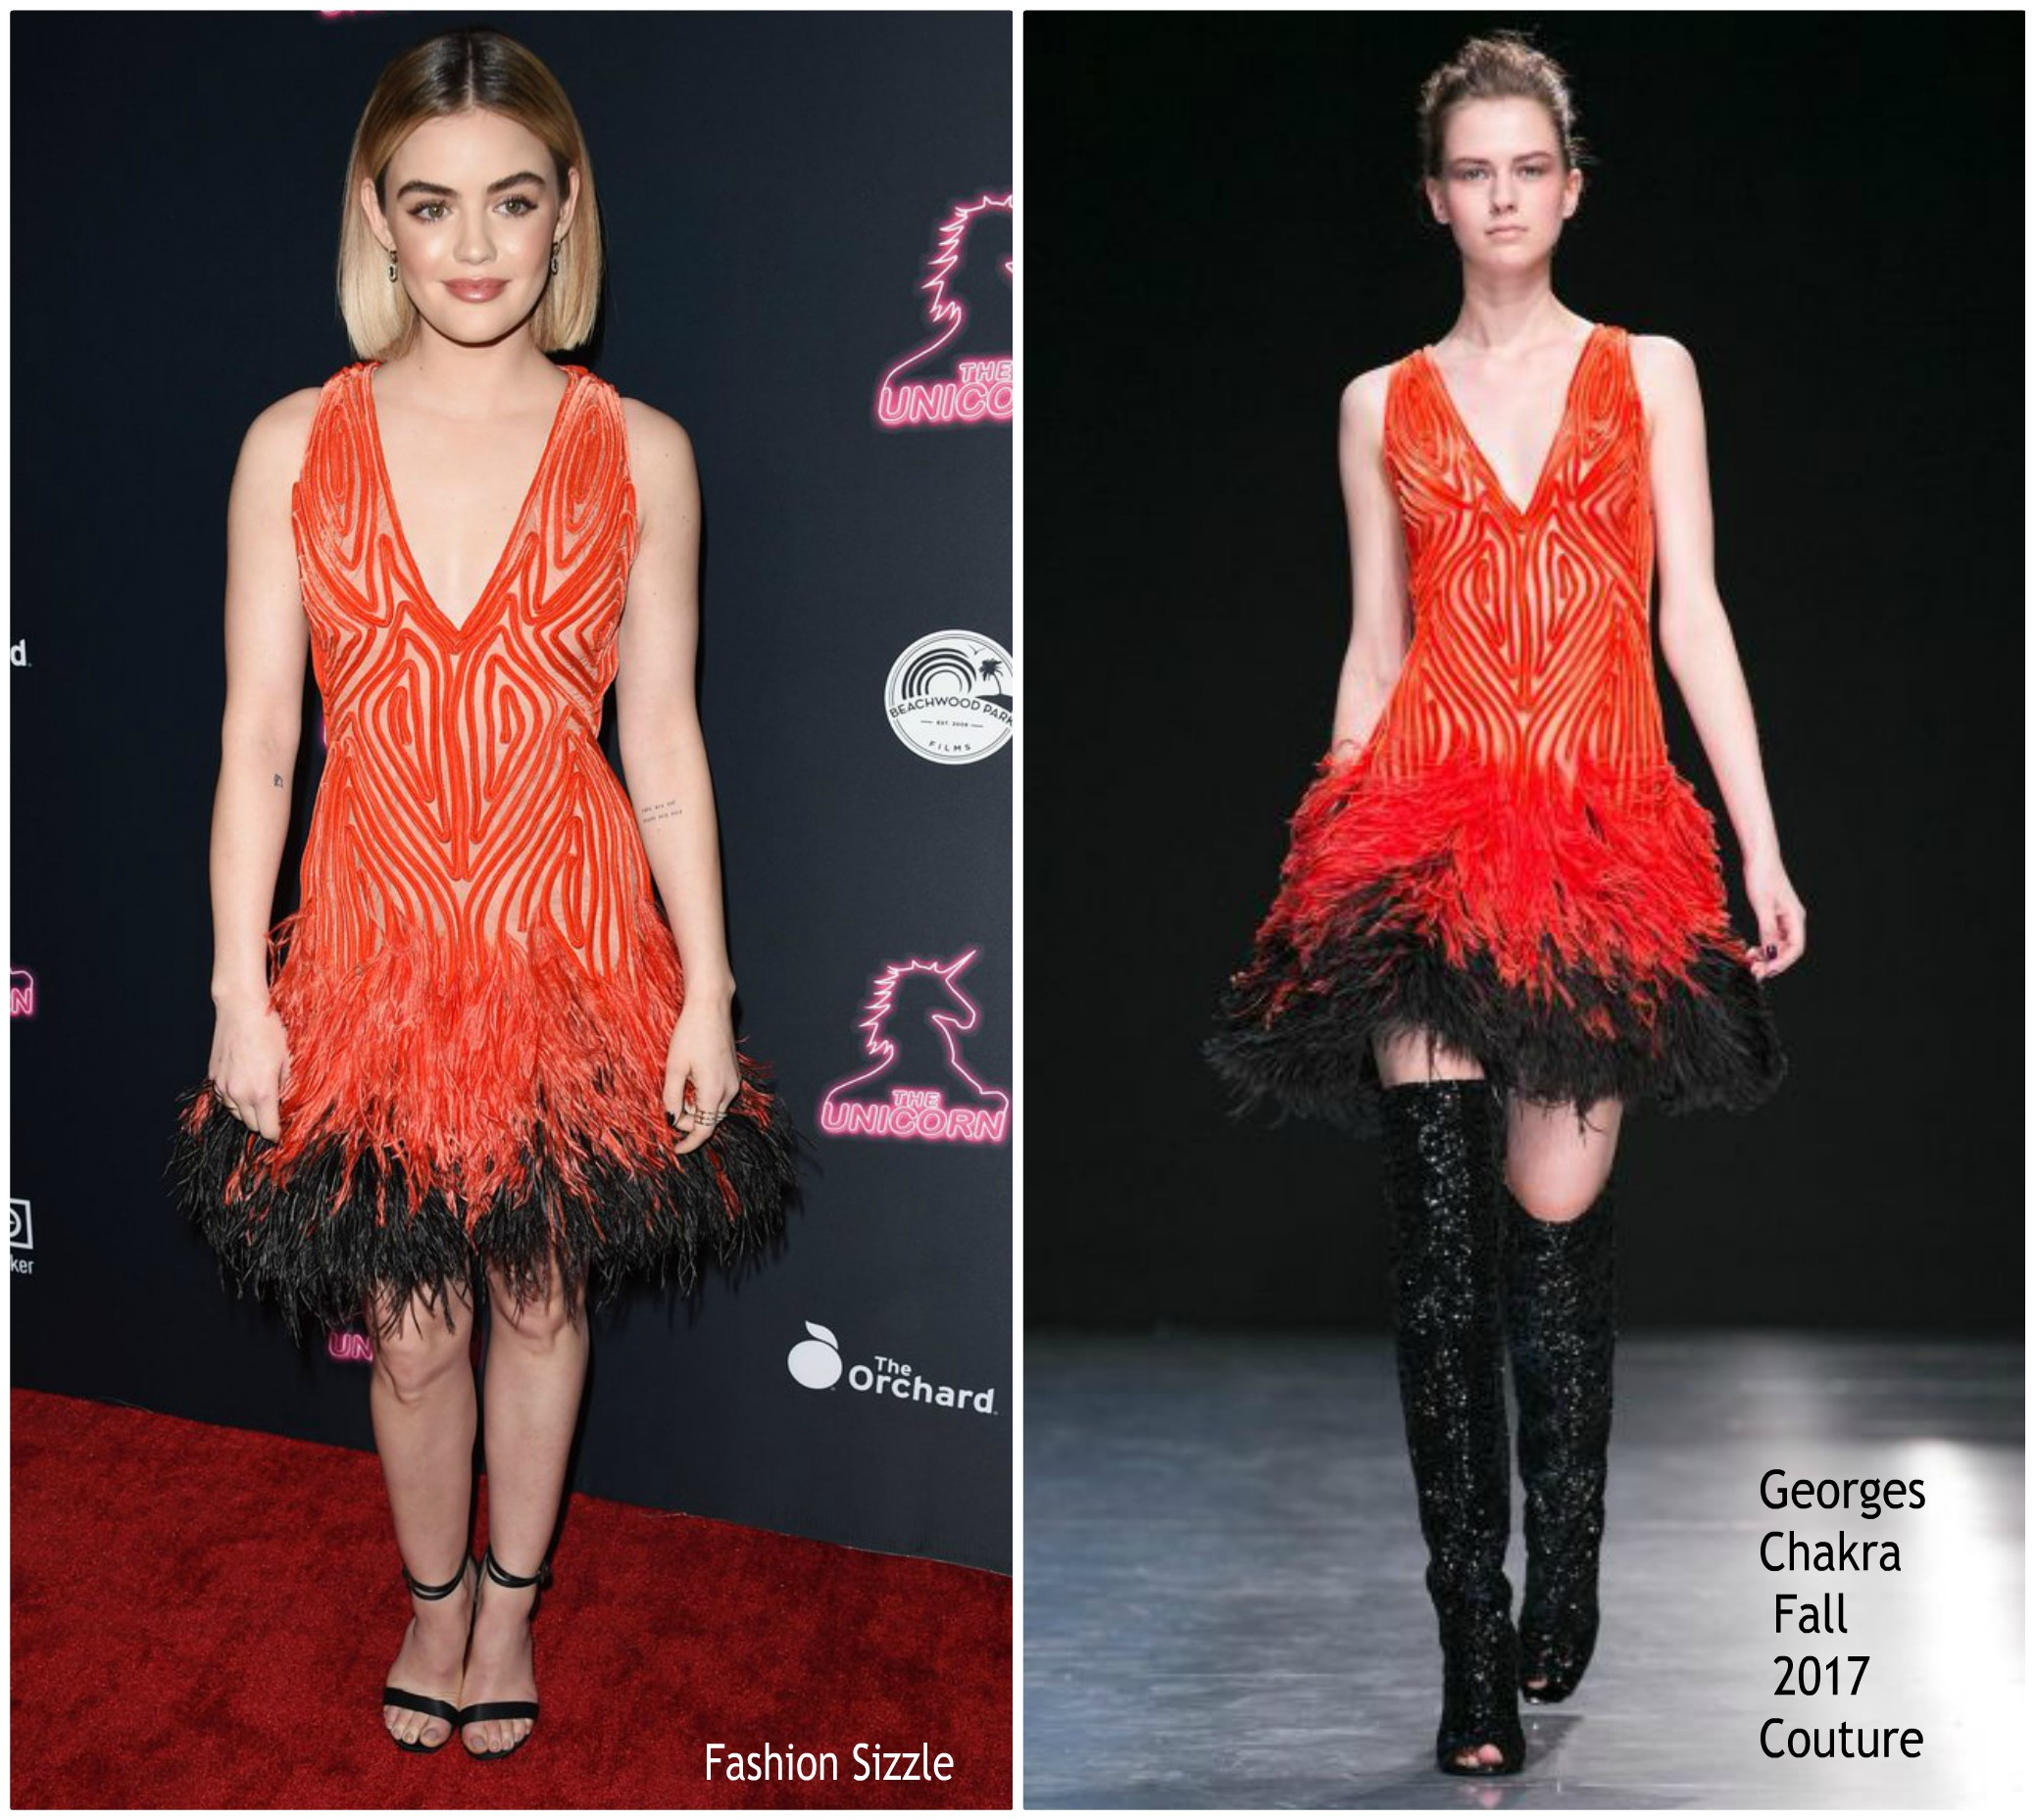 lucy-hale-in-georges-chakra-couture-the-unicorn-la-premiere